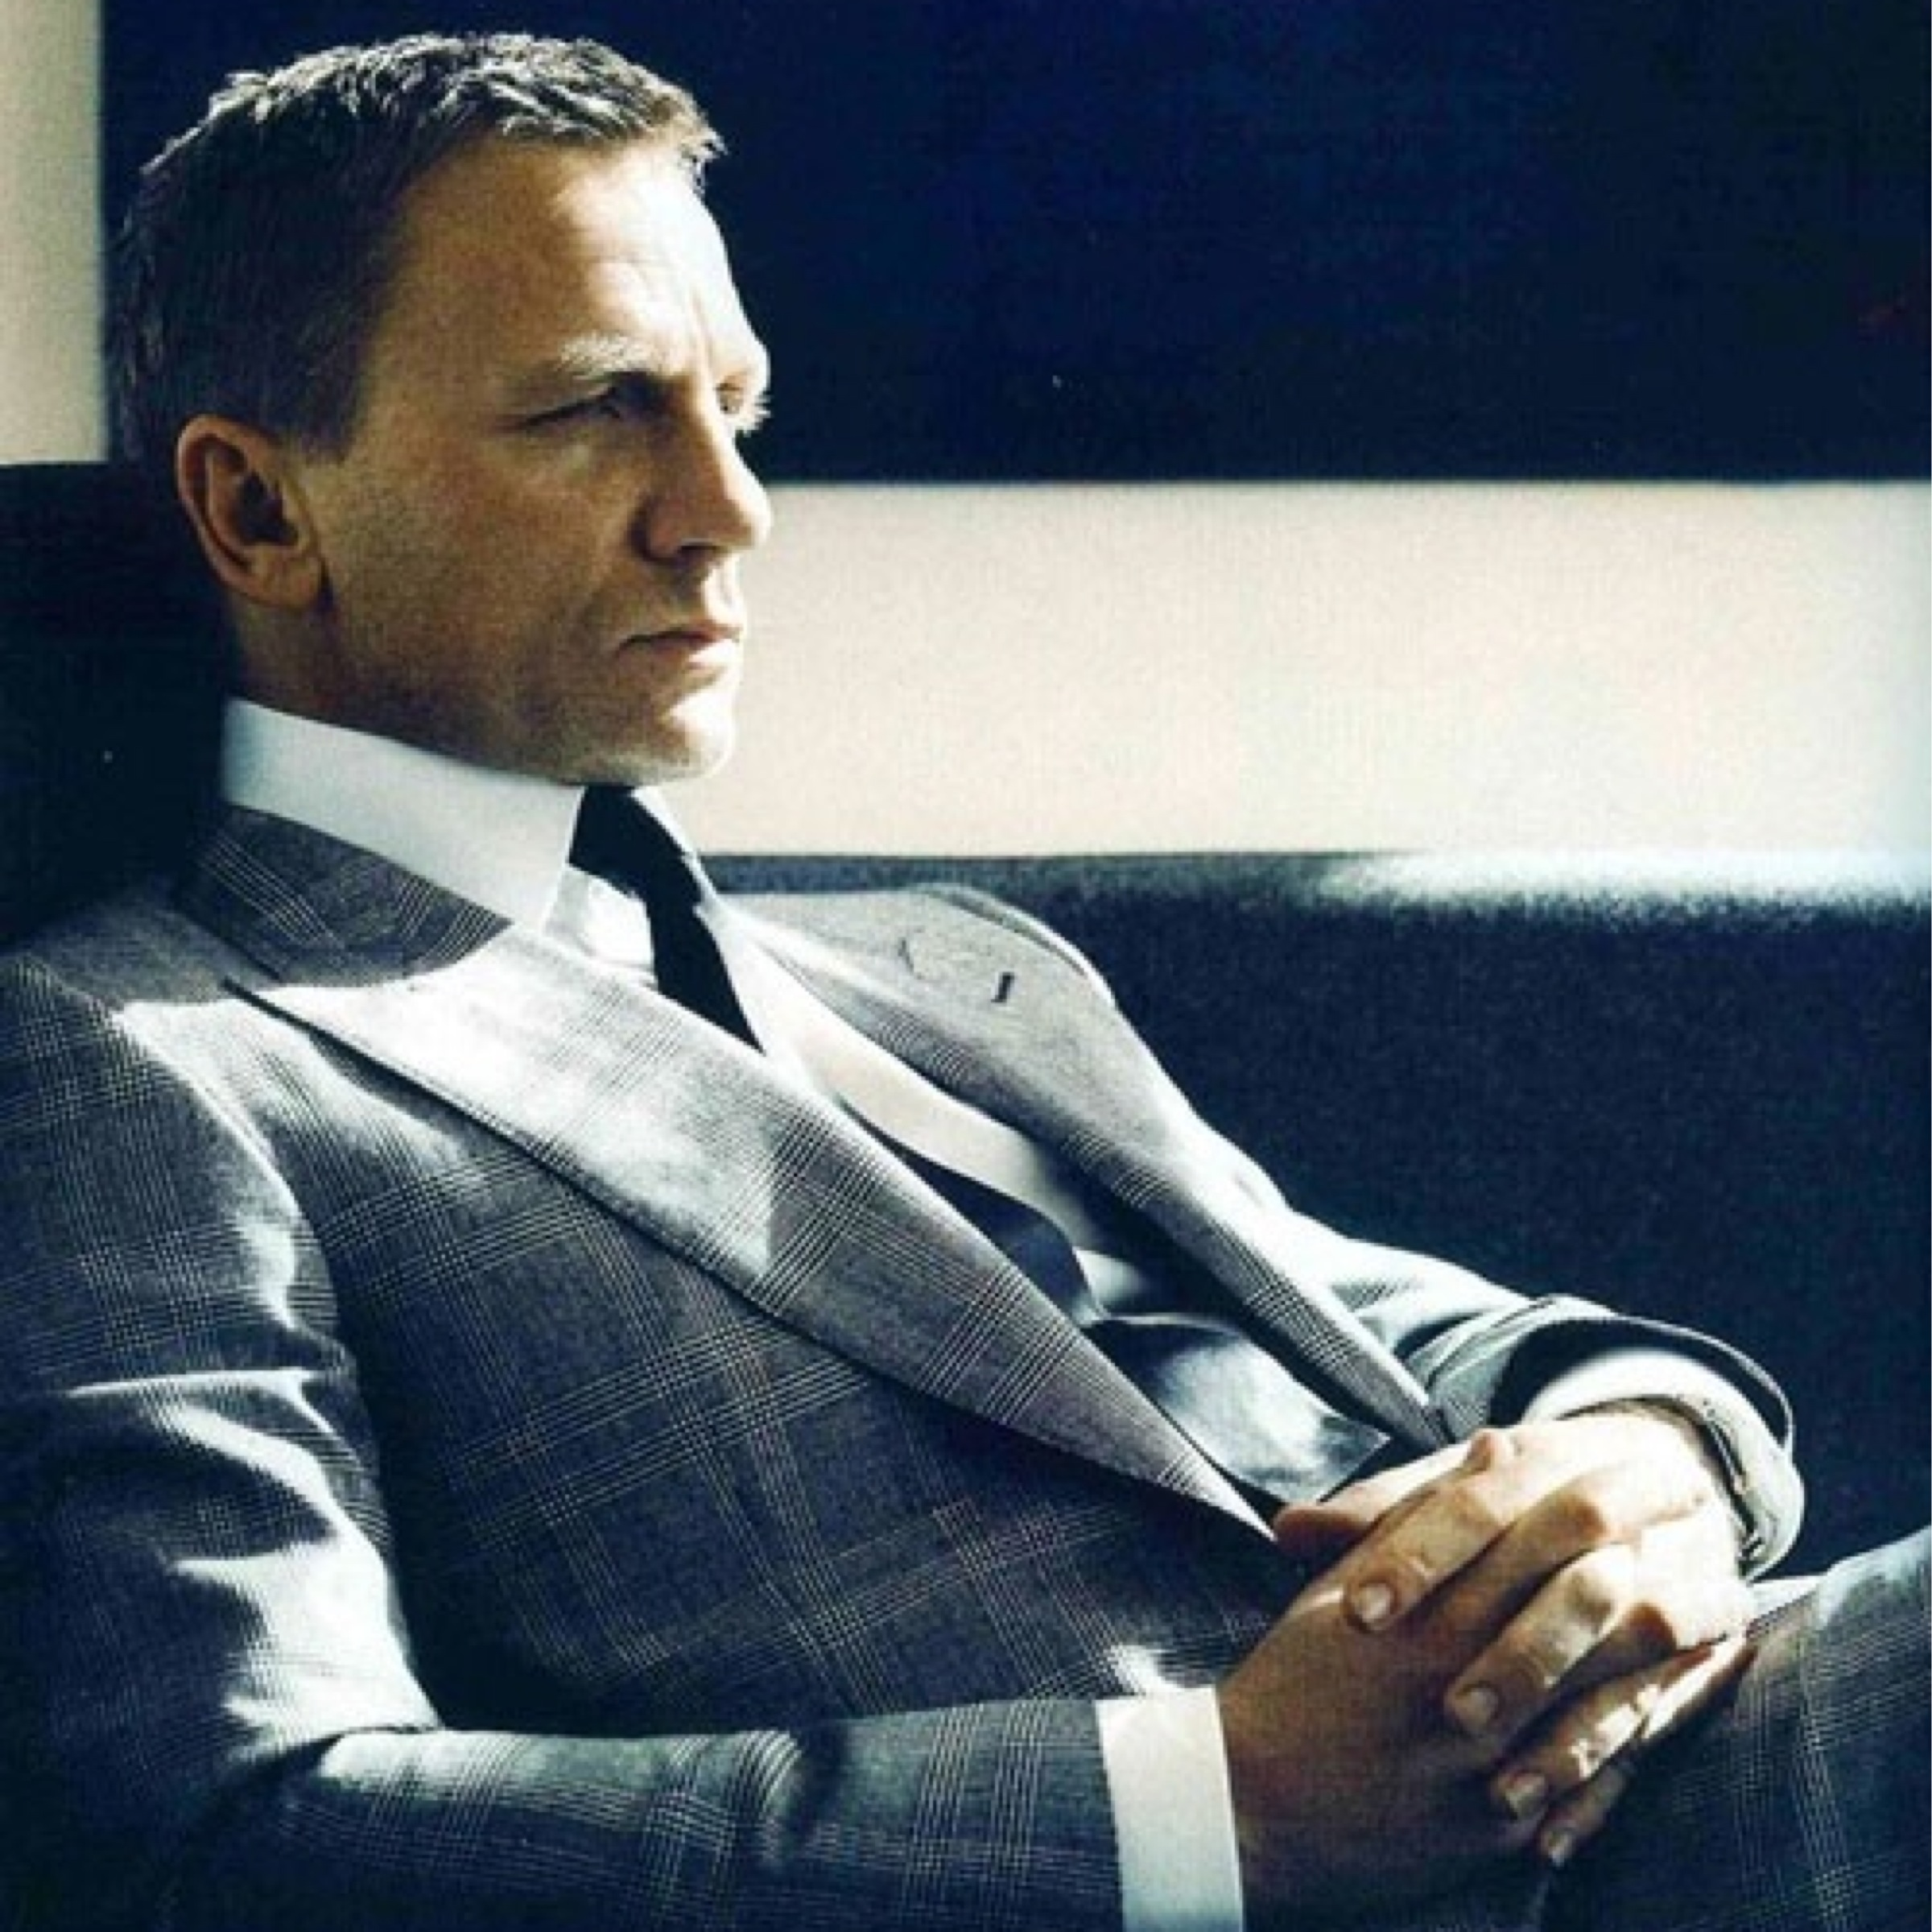 #4 (125 likes) Daniel Craig for Vogue